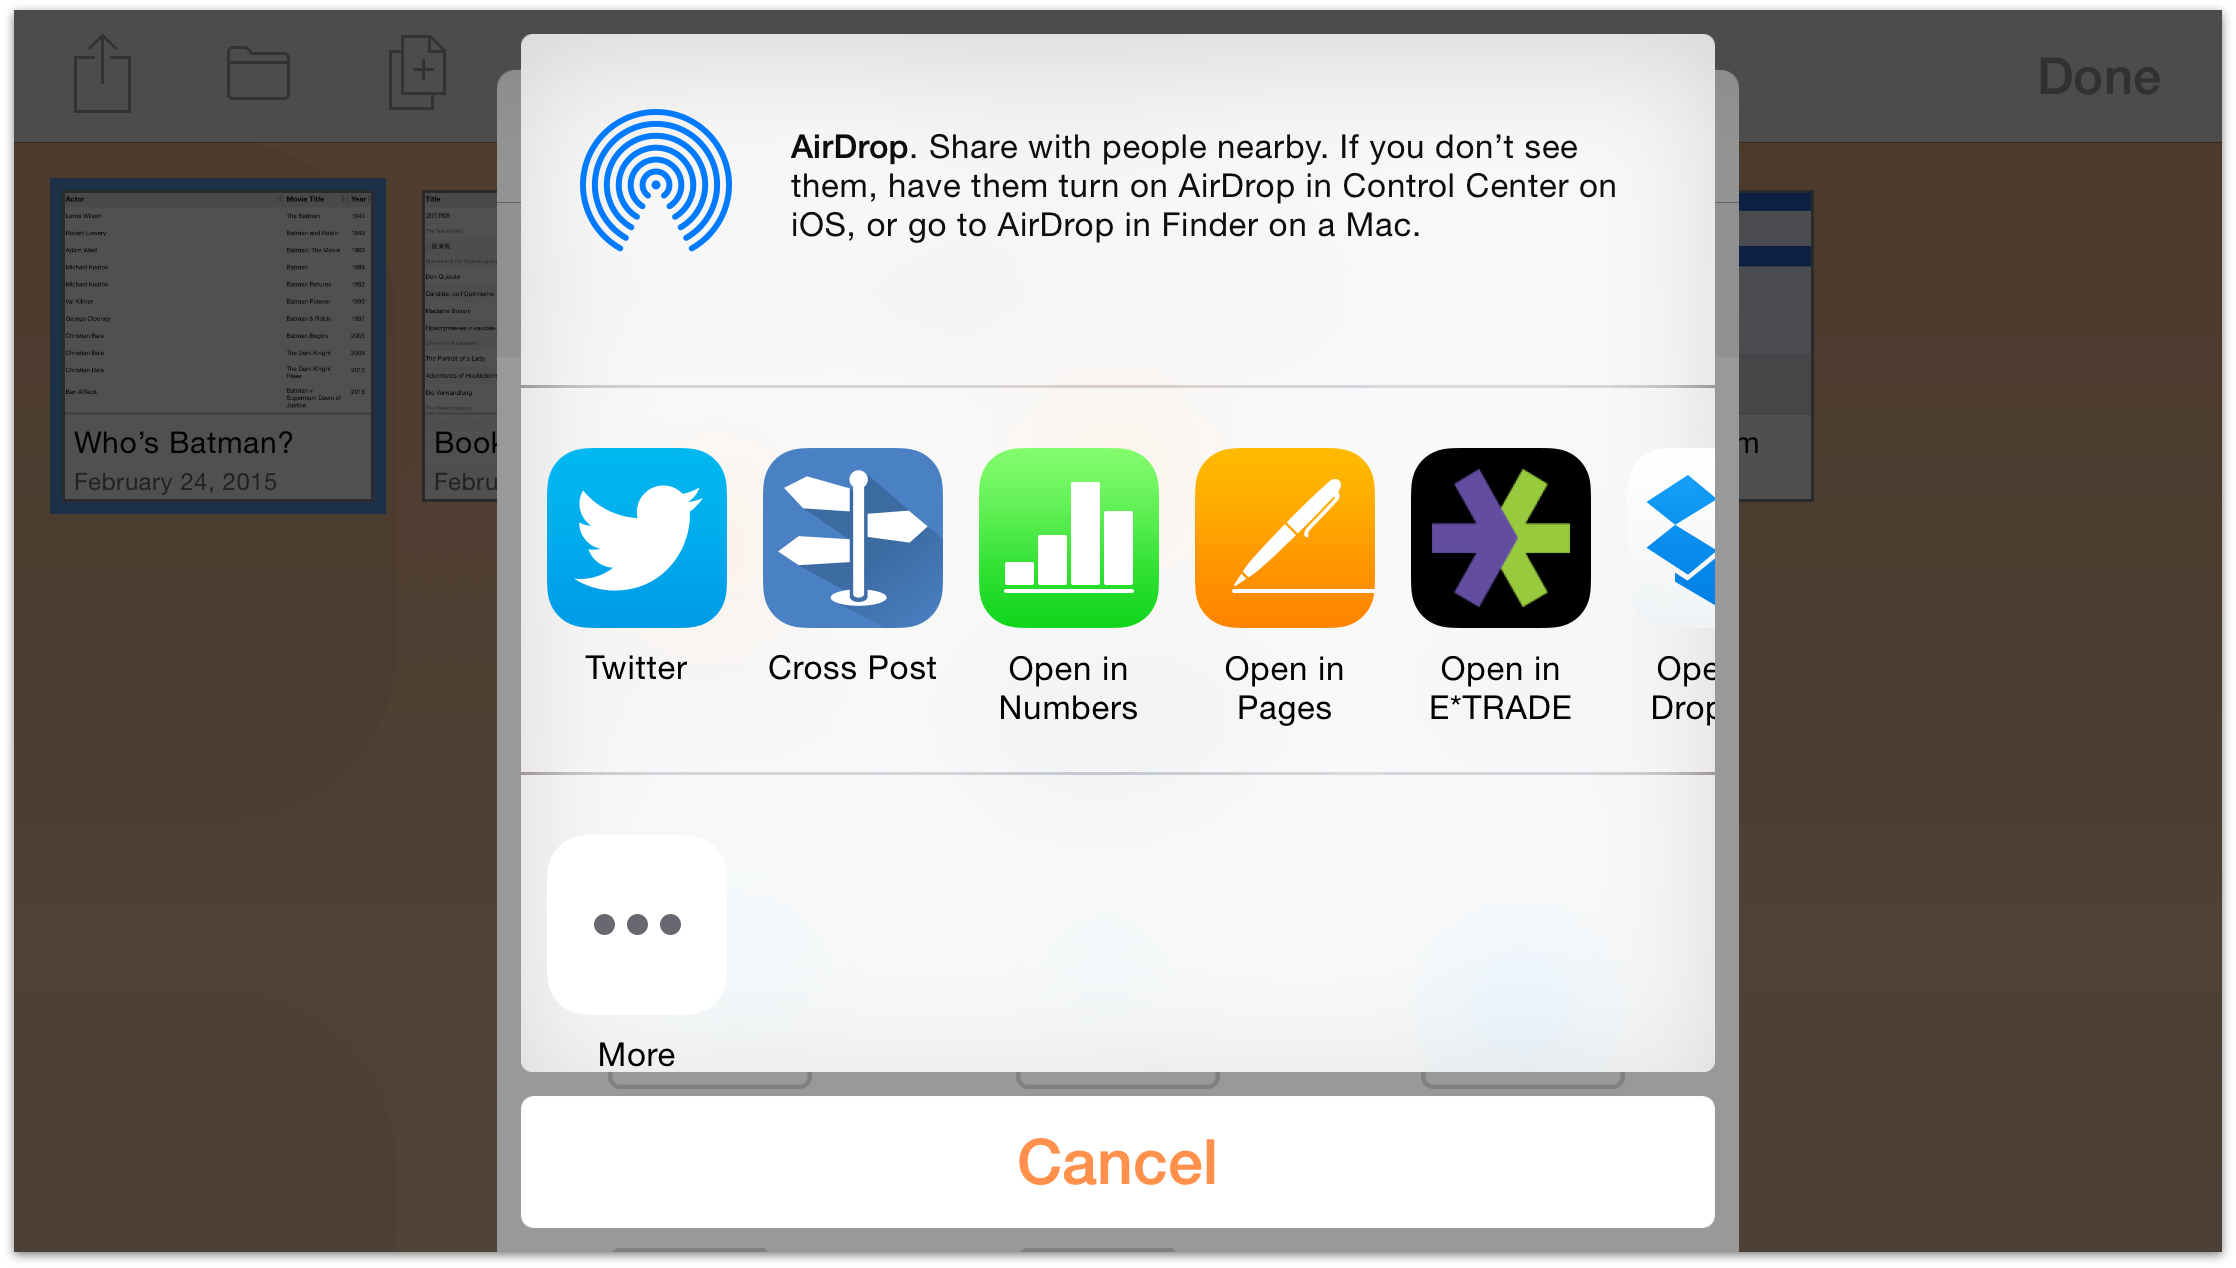 optionally you can also send the file to another person via airdrop